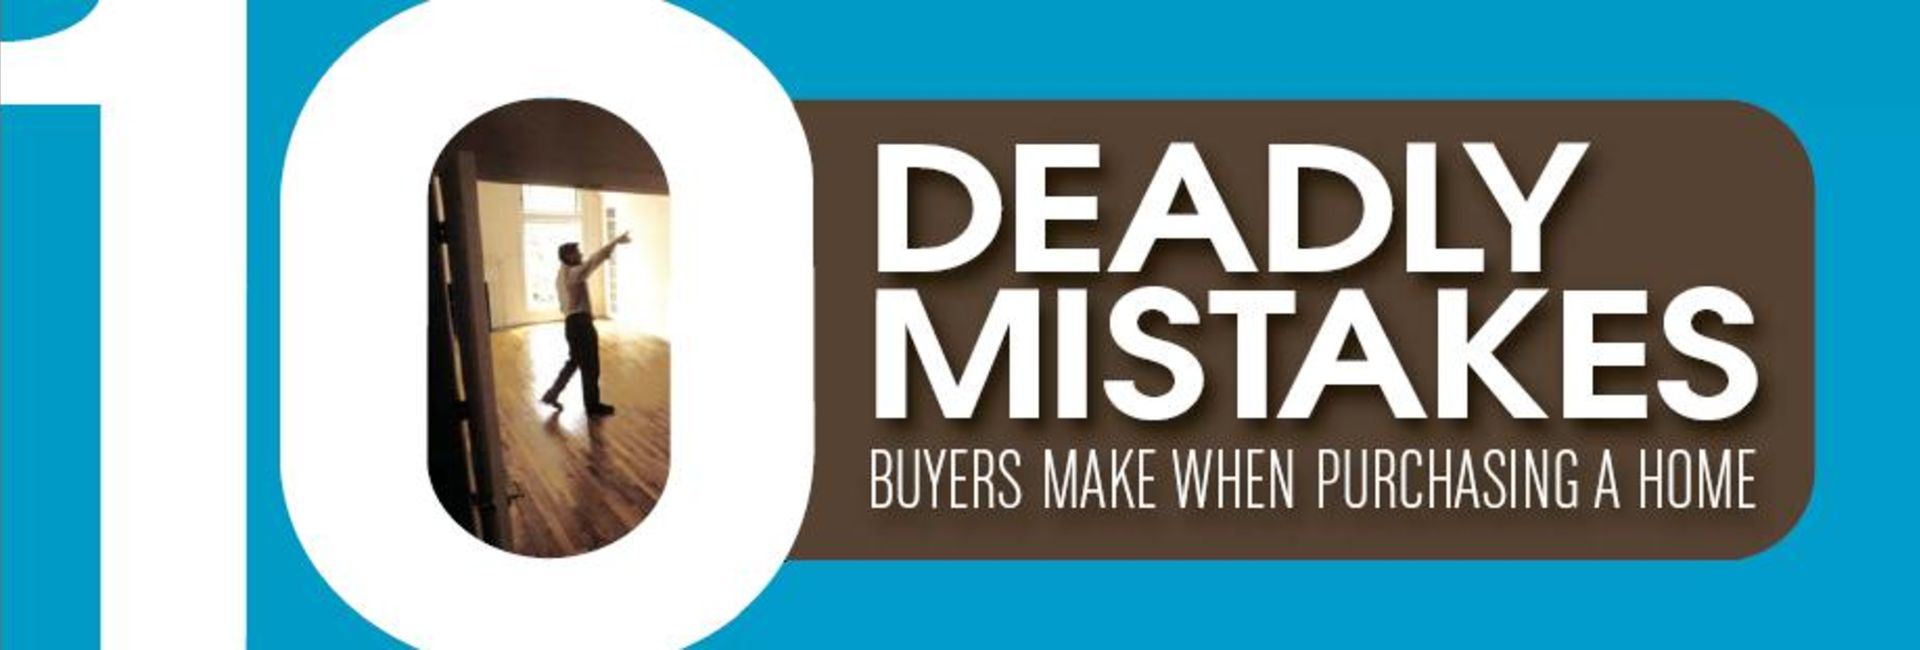 10 Deadly Mistakes Buyers Make